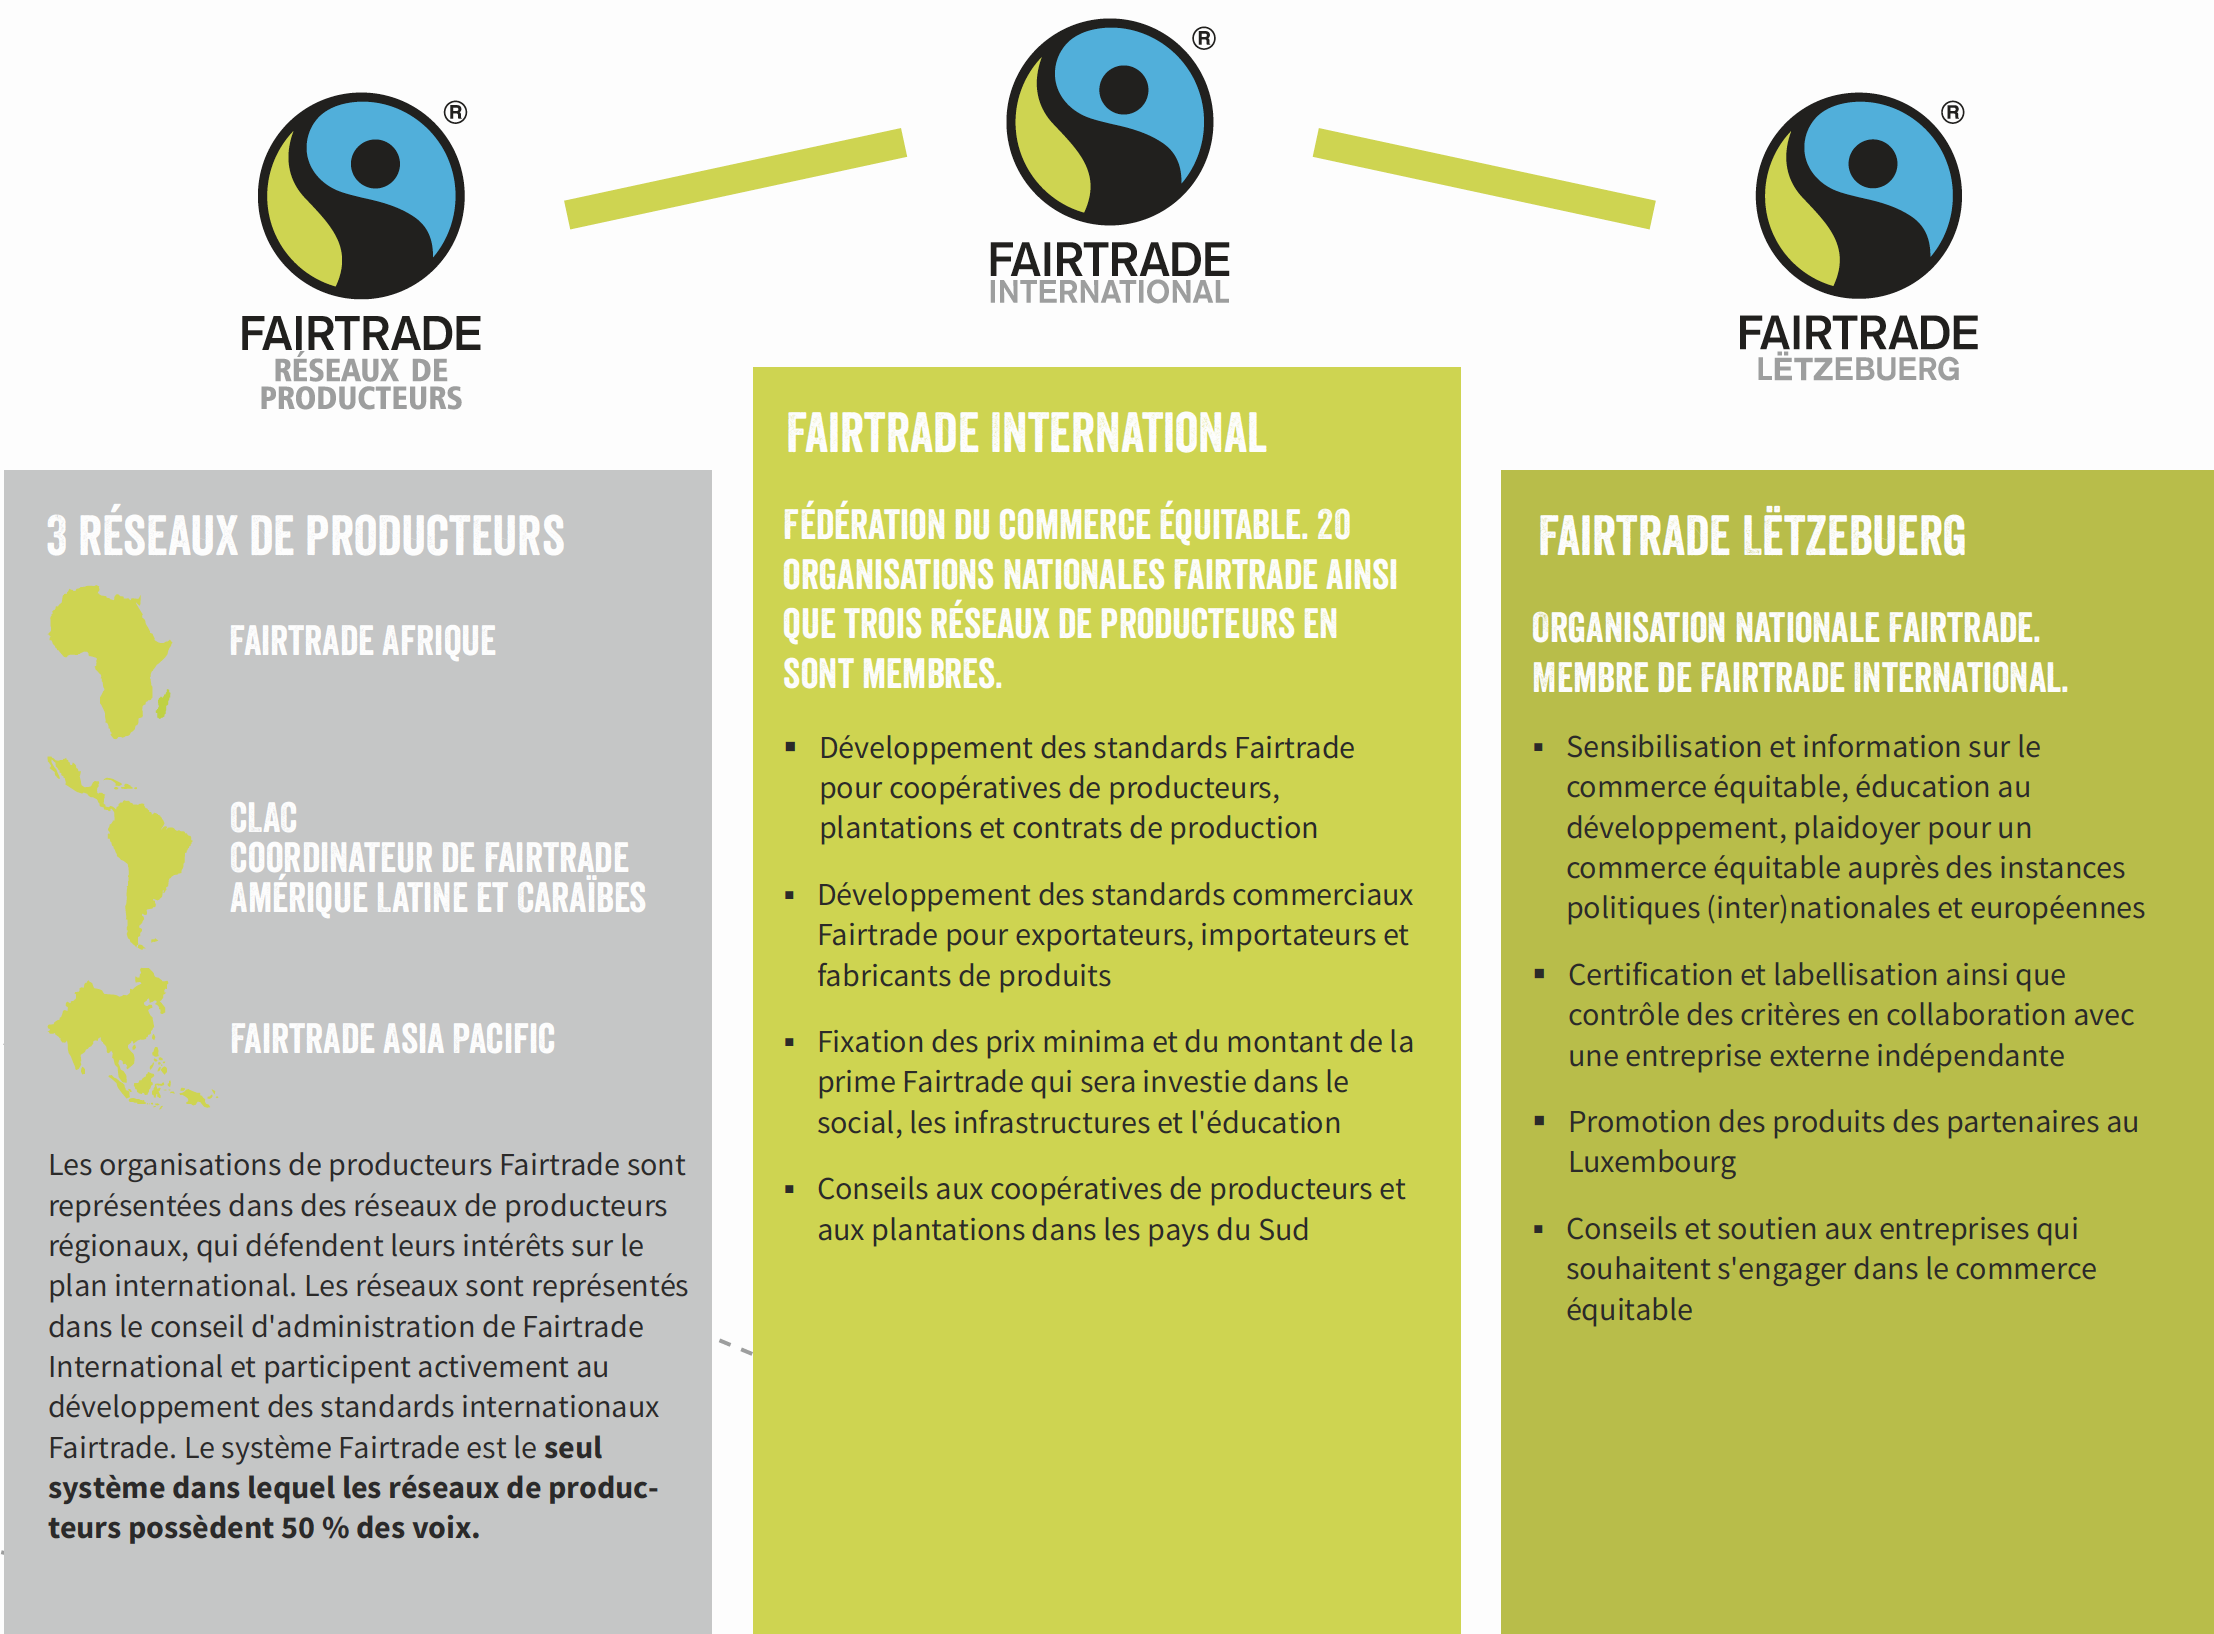 Le système Fairtrade au niveau international